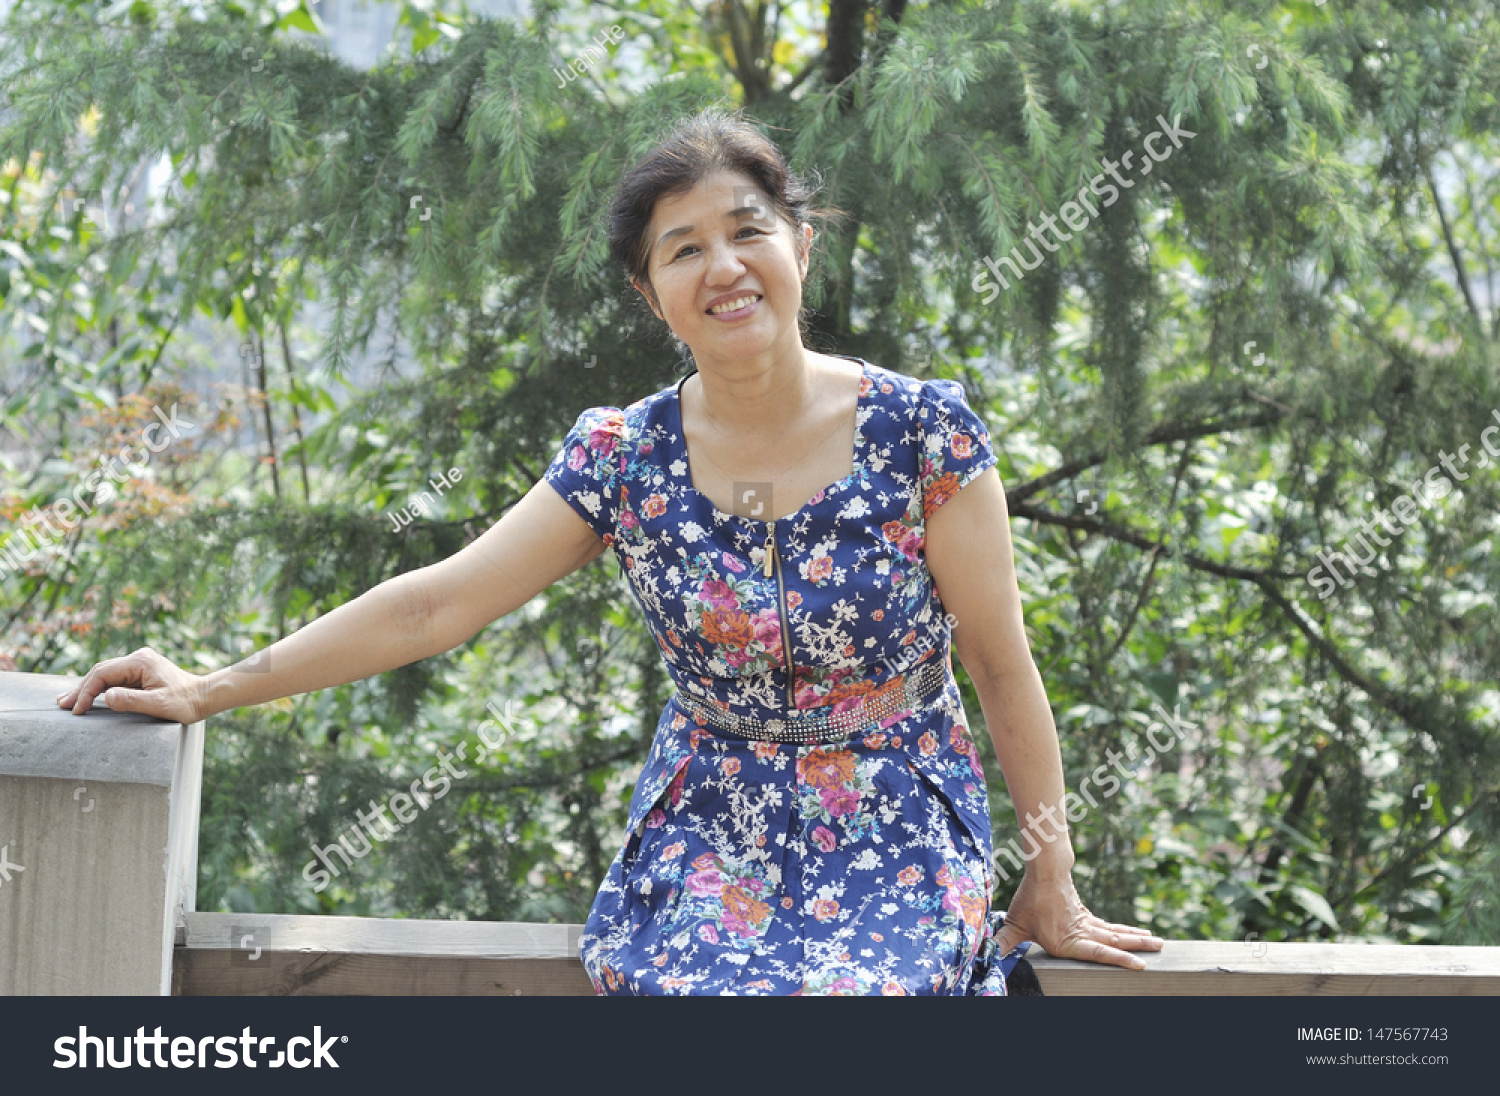 asian mature woman park stock photo 147567743 - shutterstock